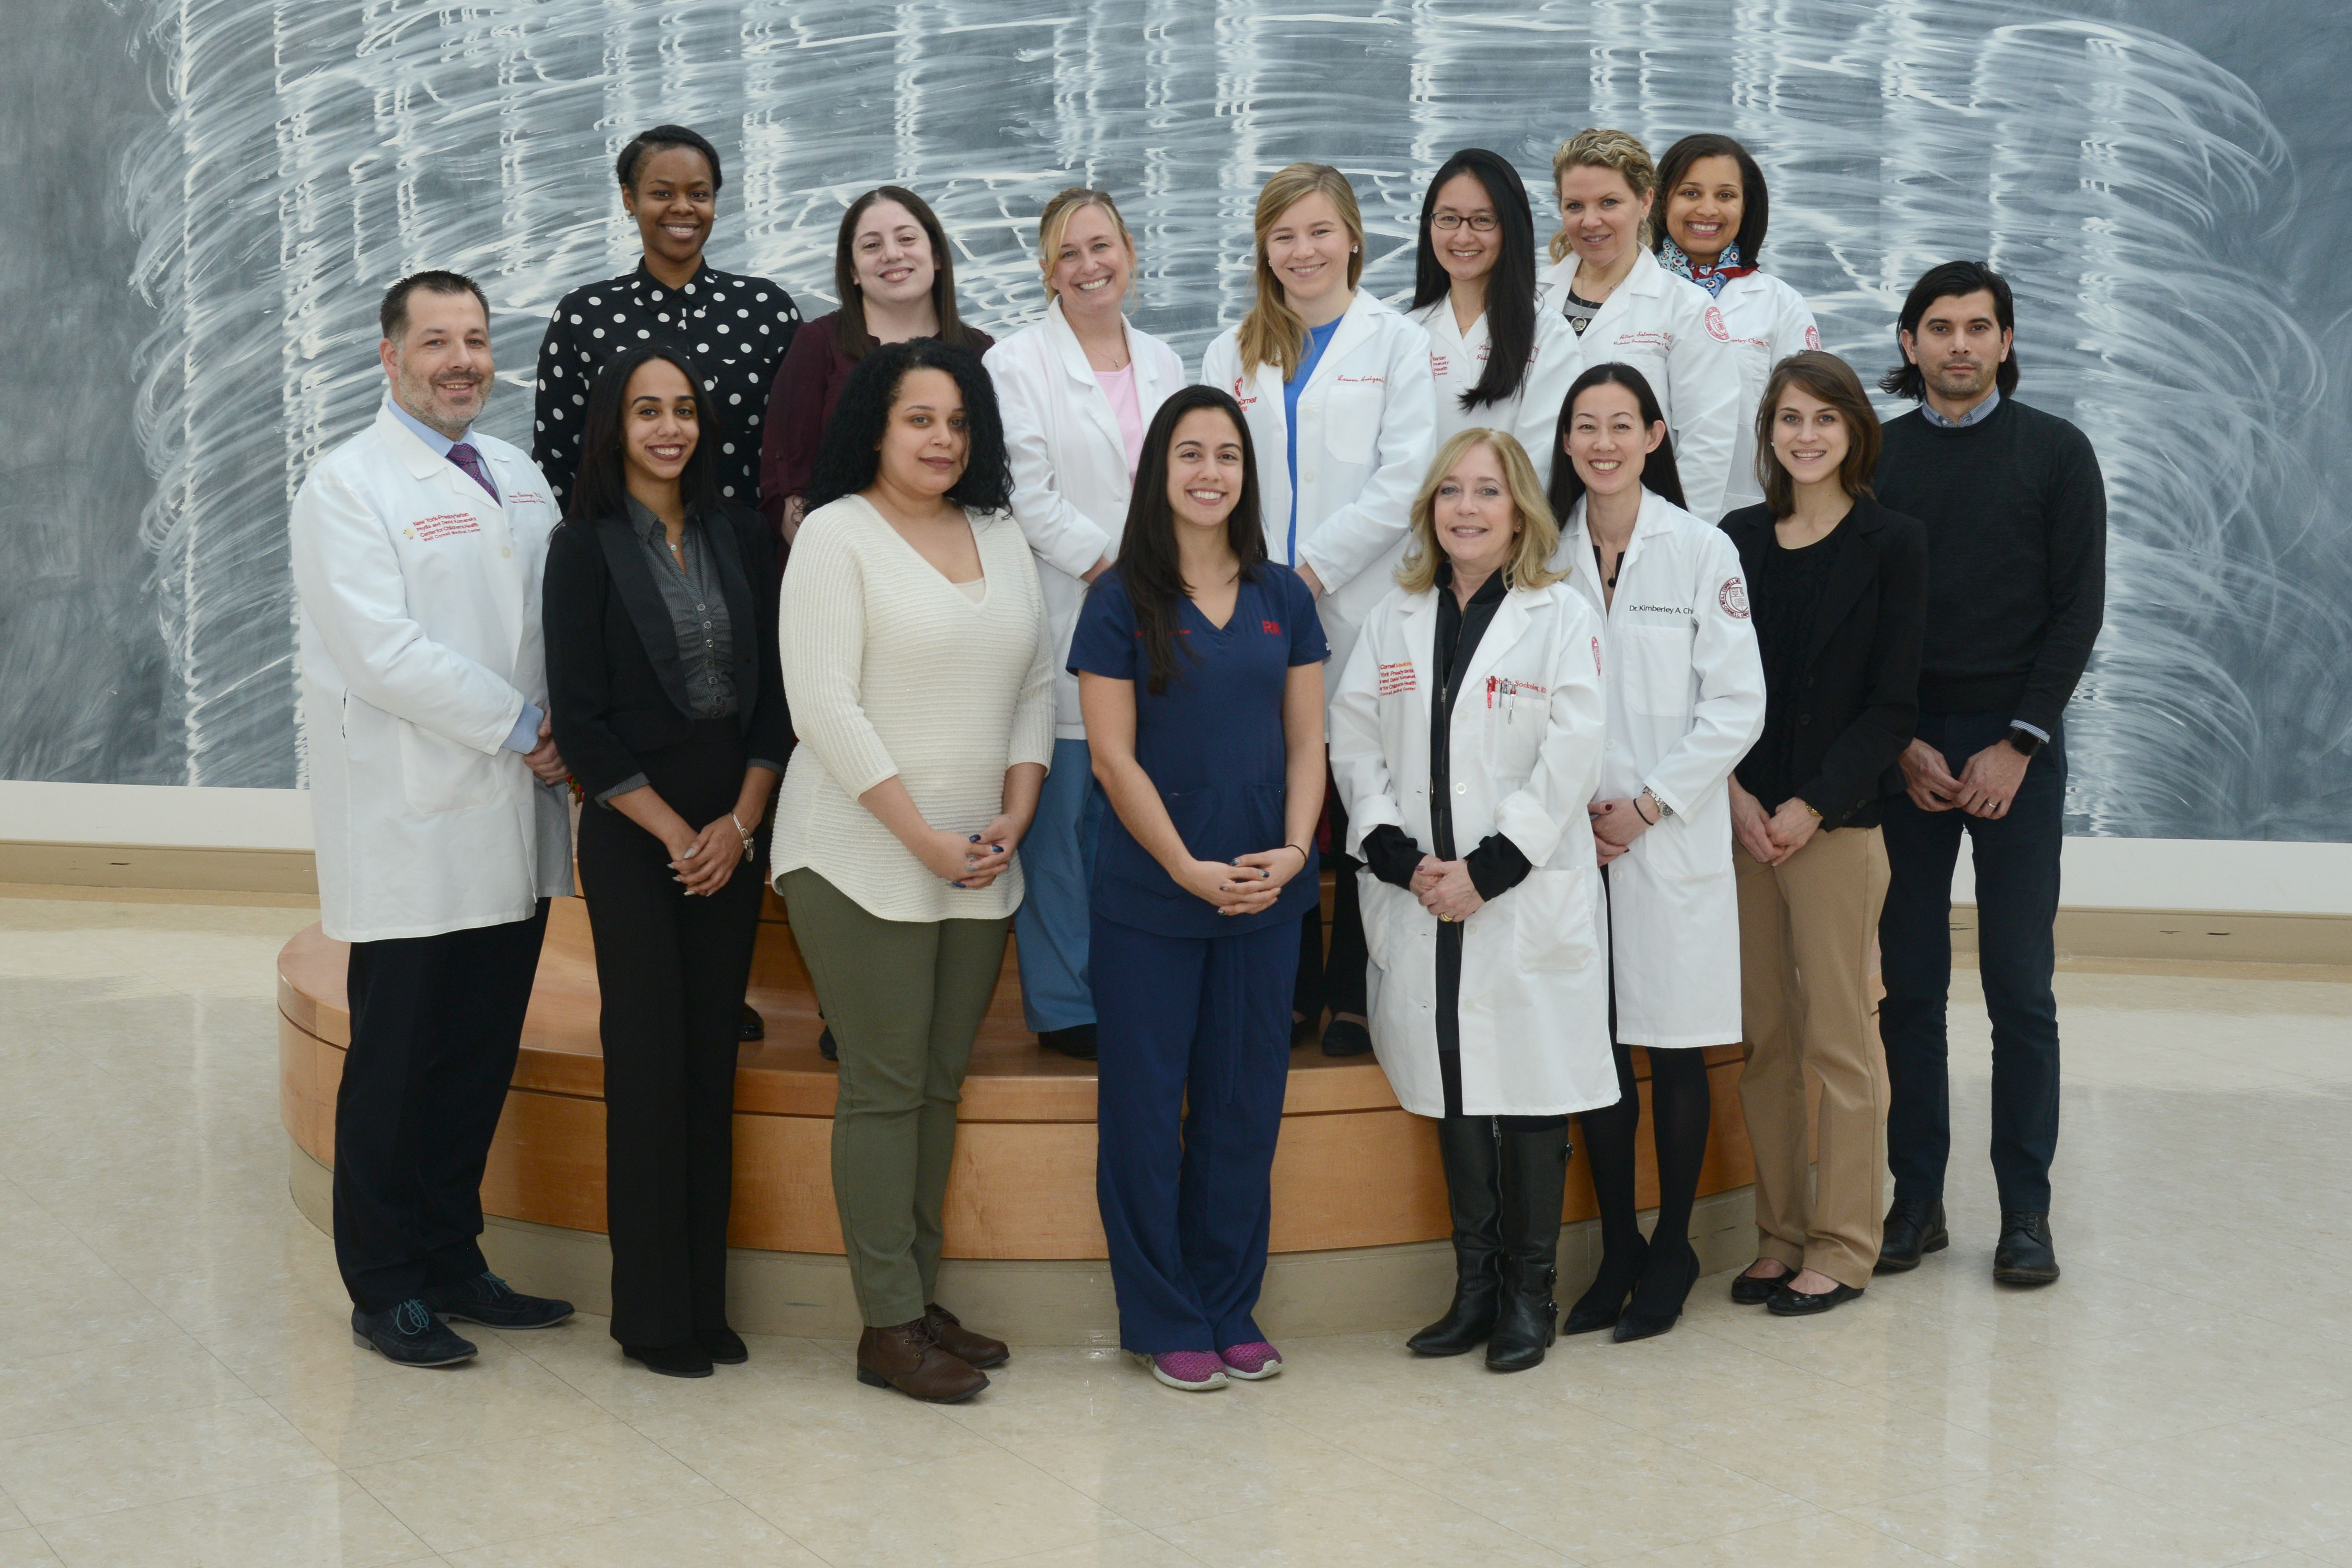 Weill Cornell Division of Pediatric Gastroenterology and Nutrition team photo